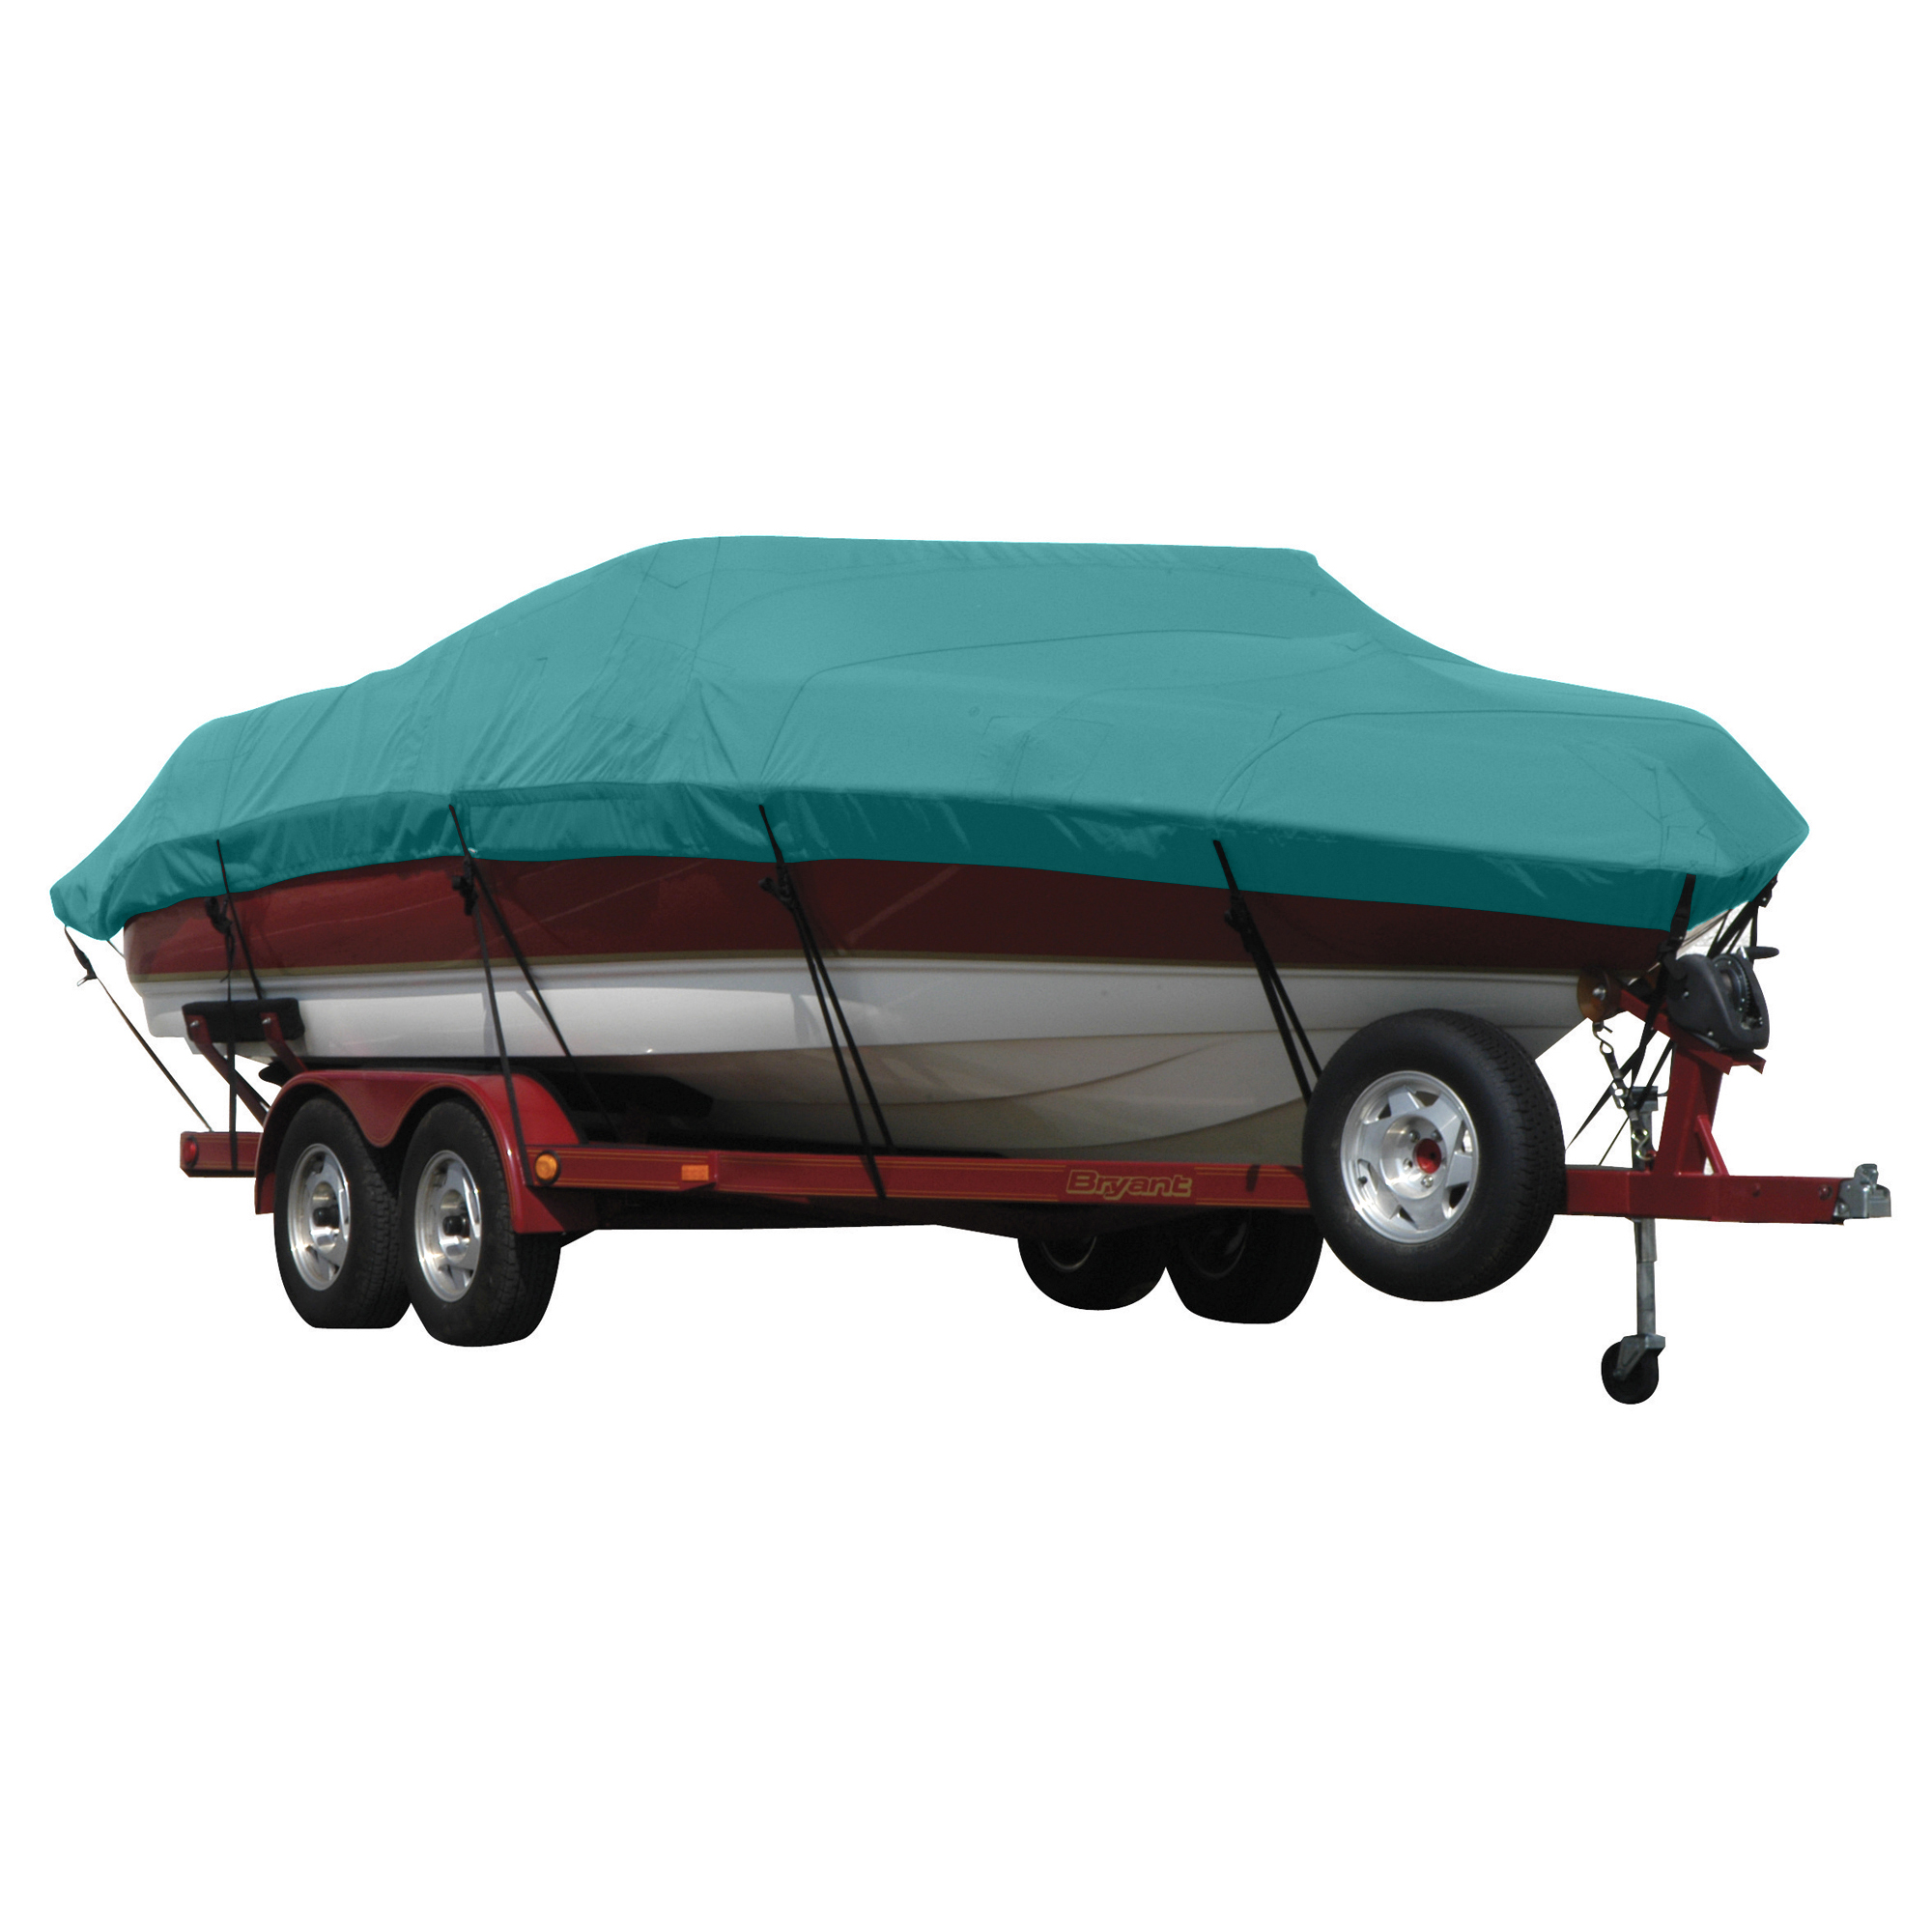 Exact Fit Covermate Sunbrella Boat Cover For CORRECT CRAFT NAUTIQUE 196 COVERS PLATFORM w/BOW CUTOUT FOR TRAILER STOP